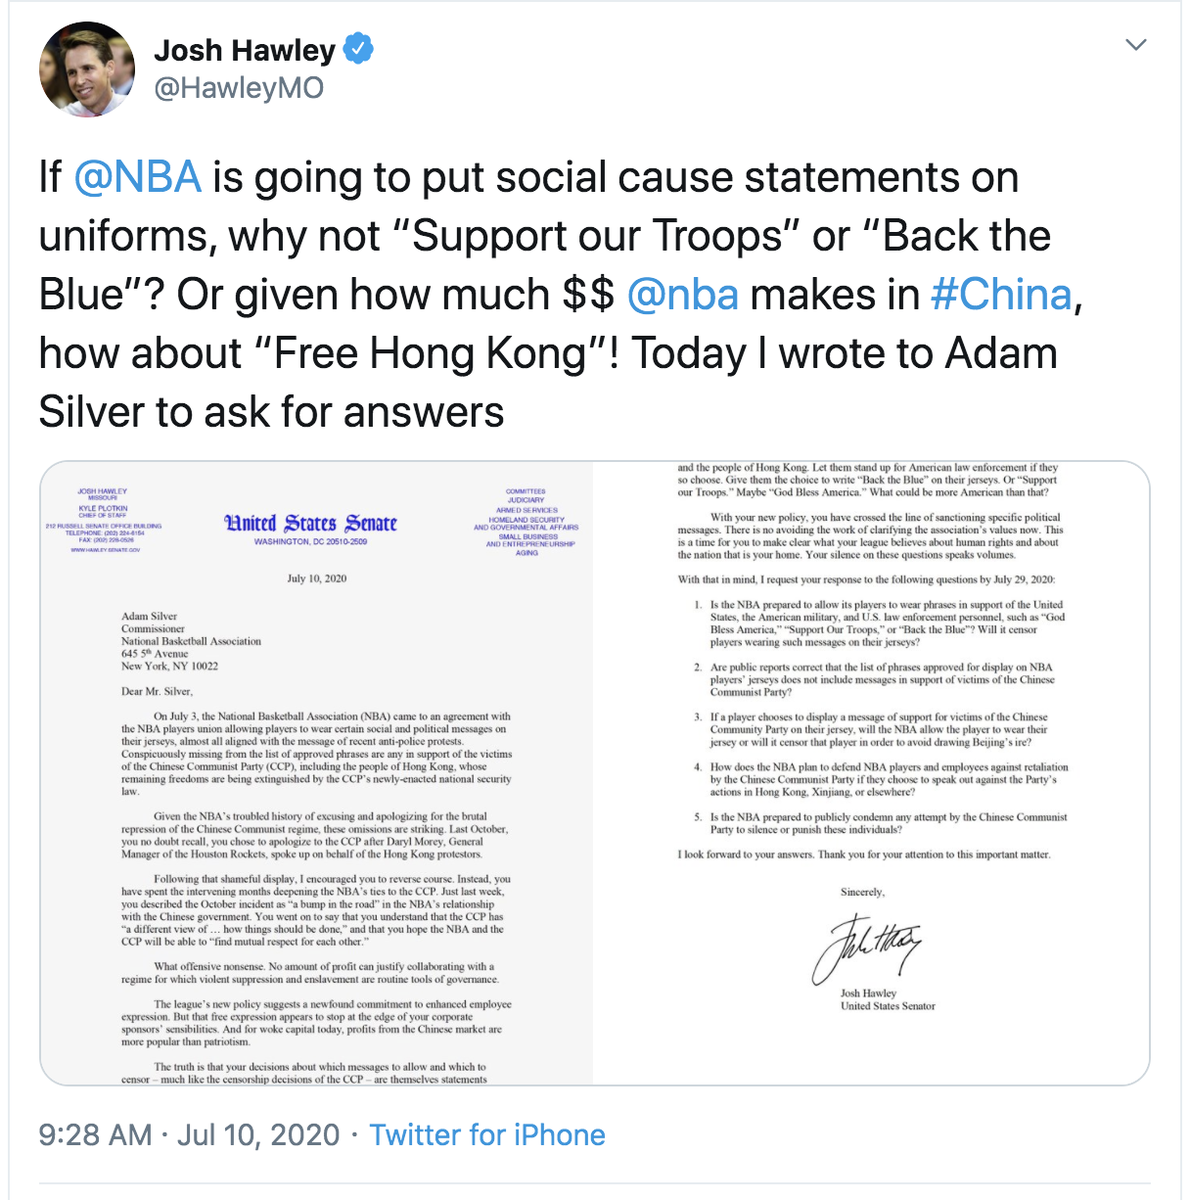 a quick scan of Hawley's TL shows no mention of Russian bounties being put on our troops, and  the NBA is a private company - Rs scream all the time that there should be no regs on what private companies can/can't do.   being racist is literally the only thing these people have. https://t.co/4shjVfhfHs